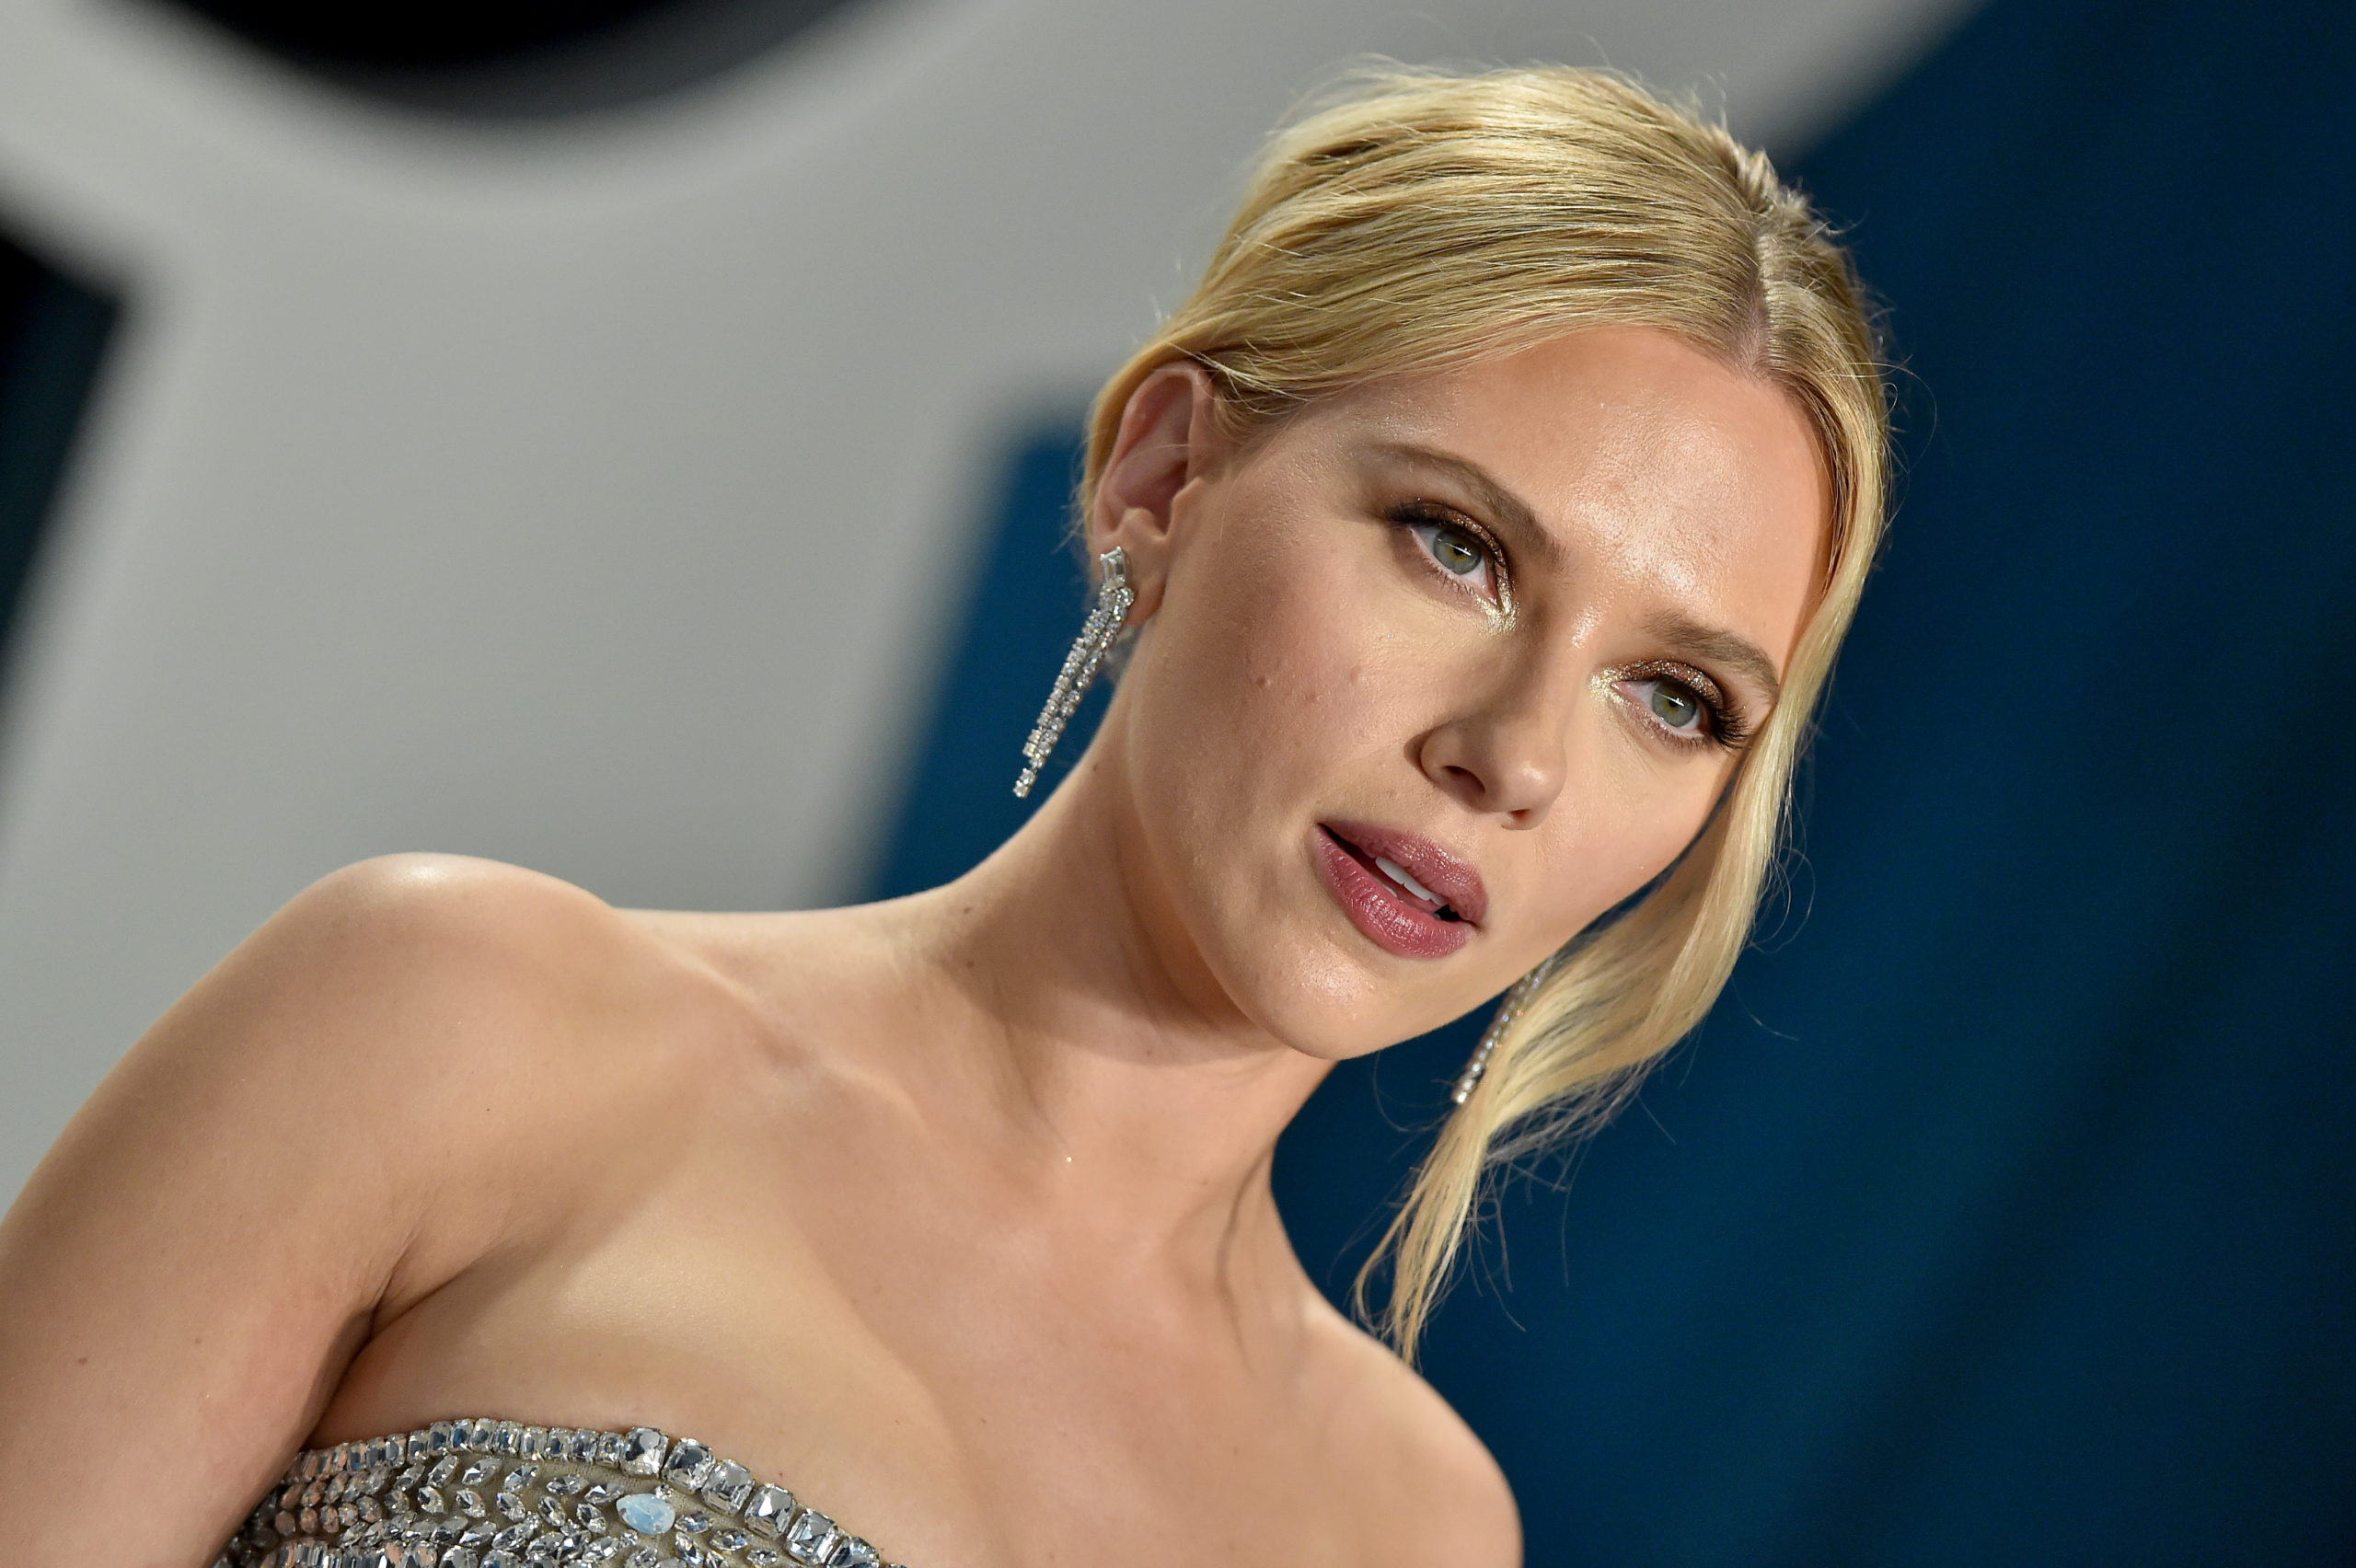 Scarlett Johansson will not be involved in the project